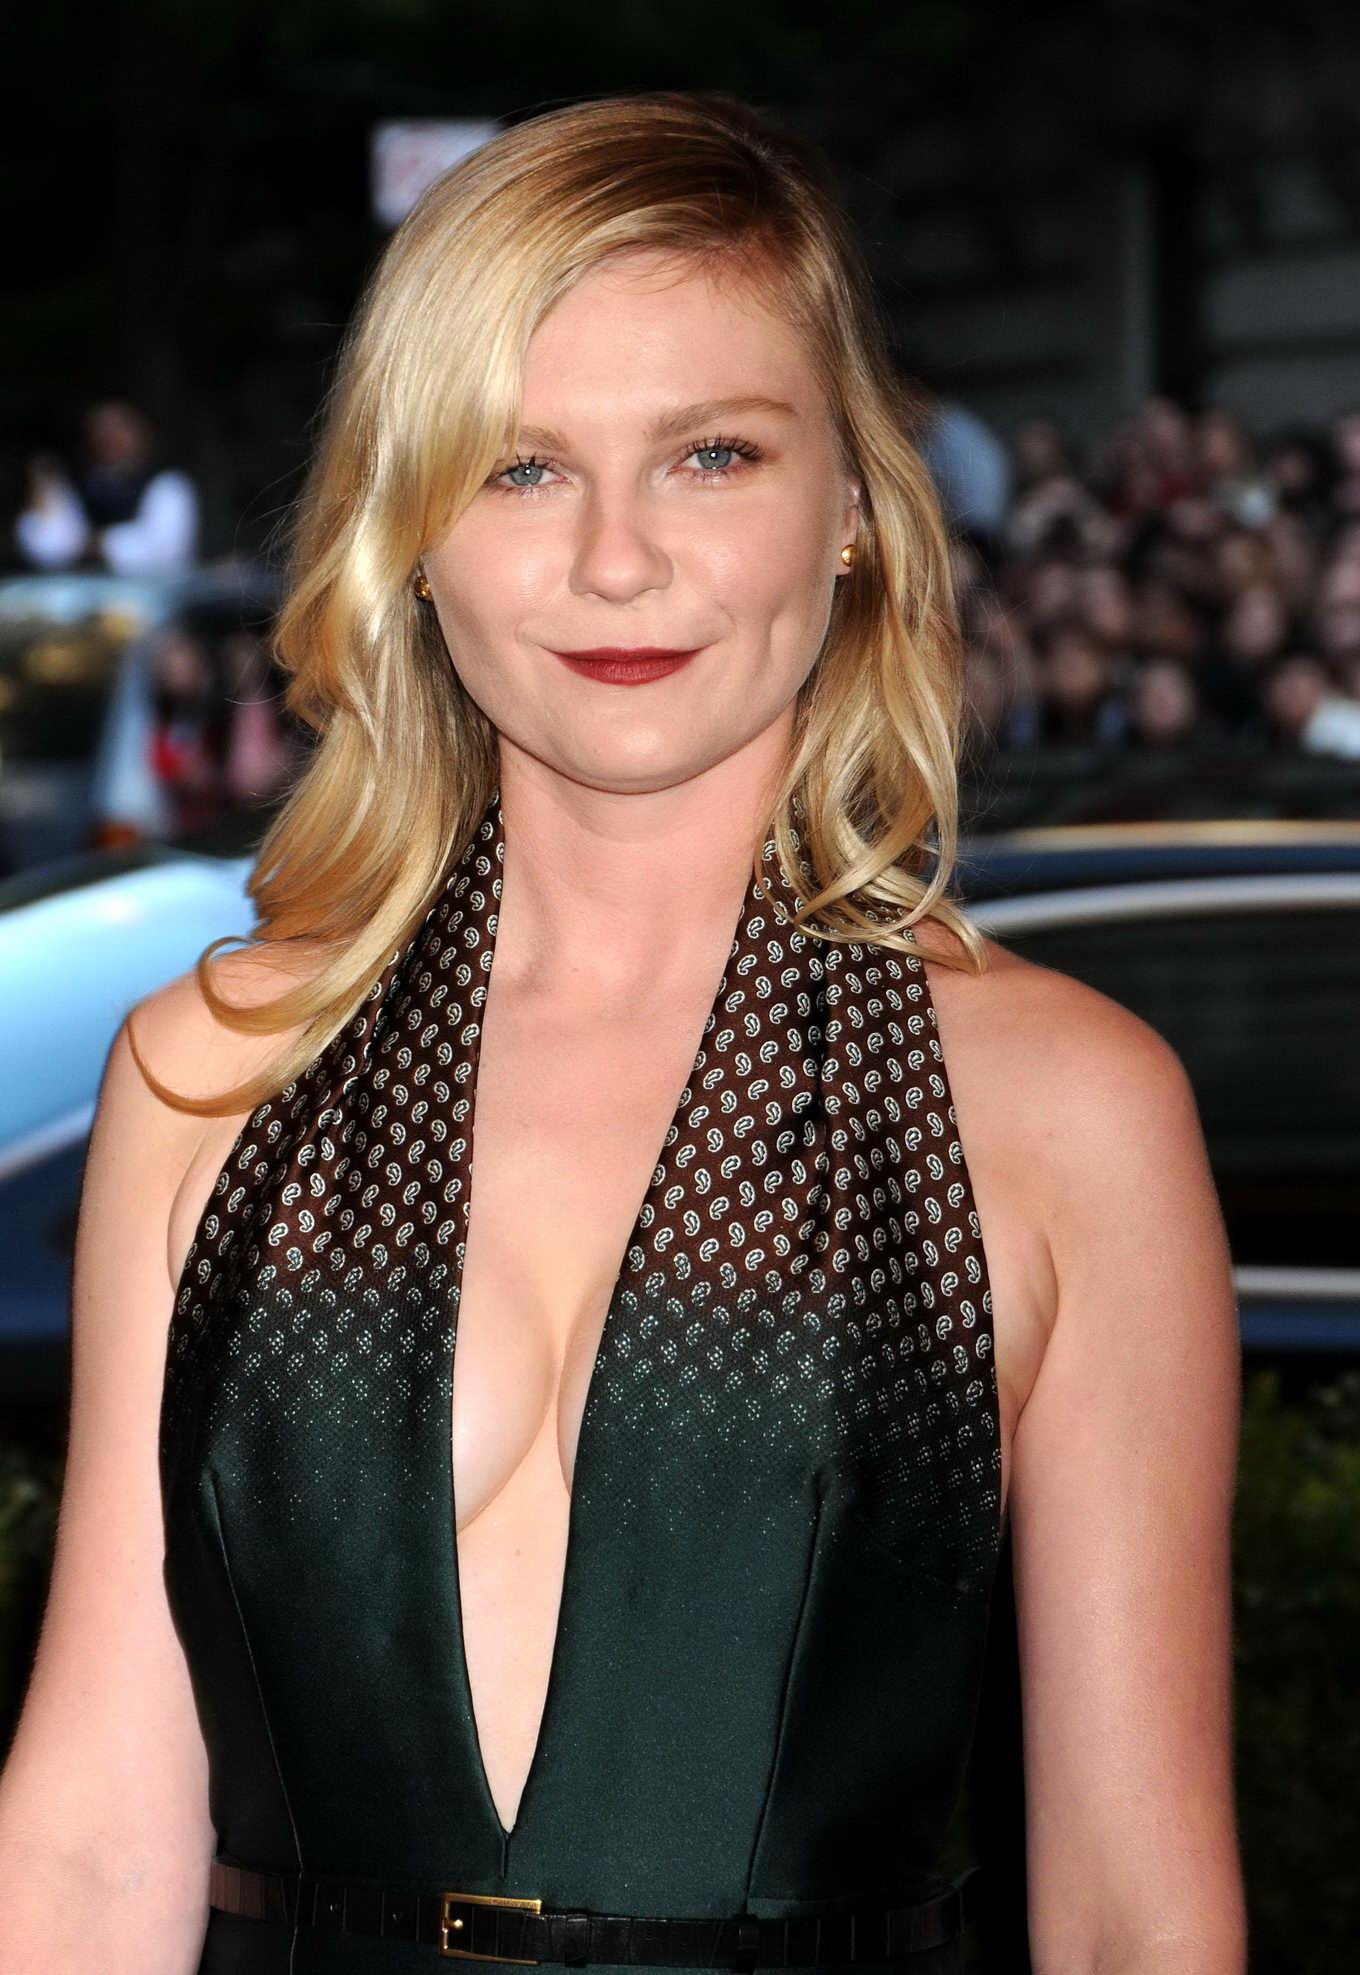 Braless Kirsten Dunst showing cleavage & side boob at the ...